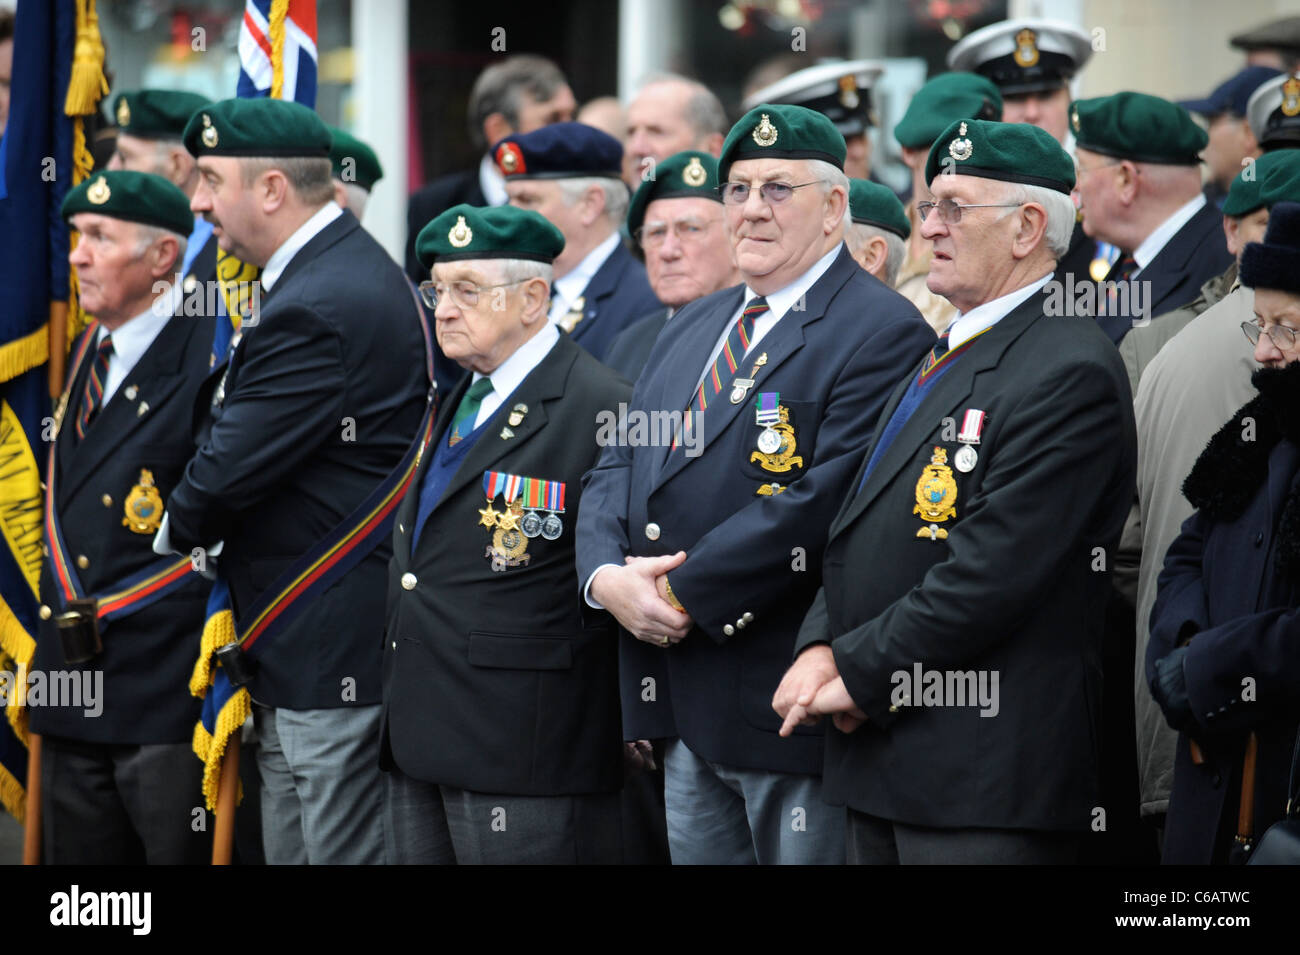 Royal Marines veterans amongst mourners gathered for a repatriation ceremony at Wootton Bassett, Wiltshire UK Dec Stock Photo